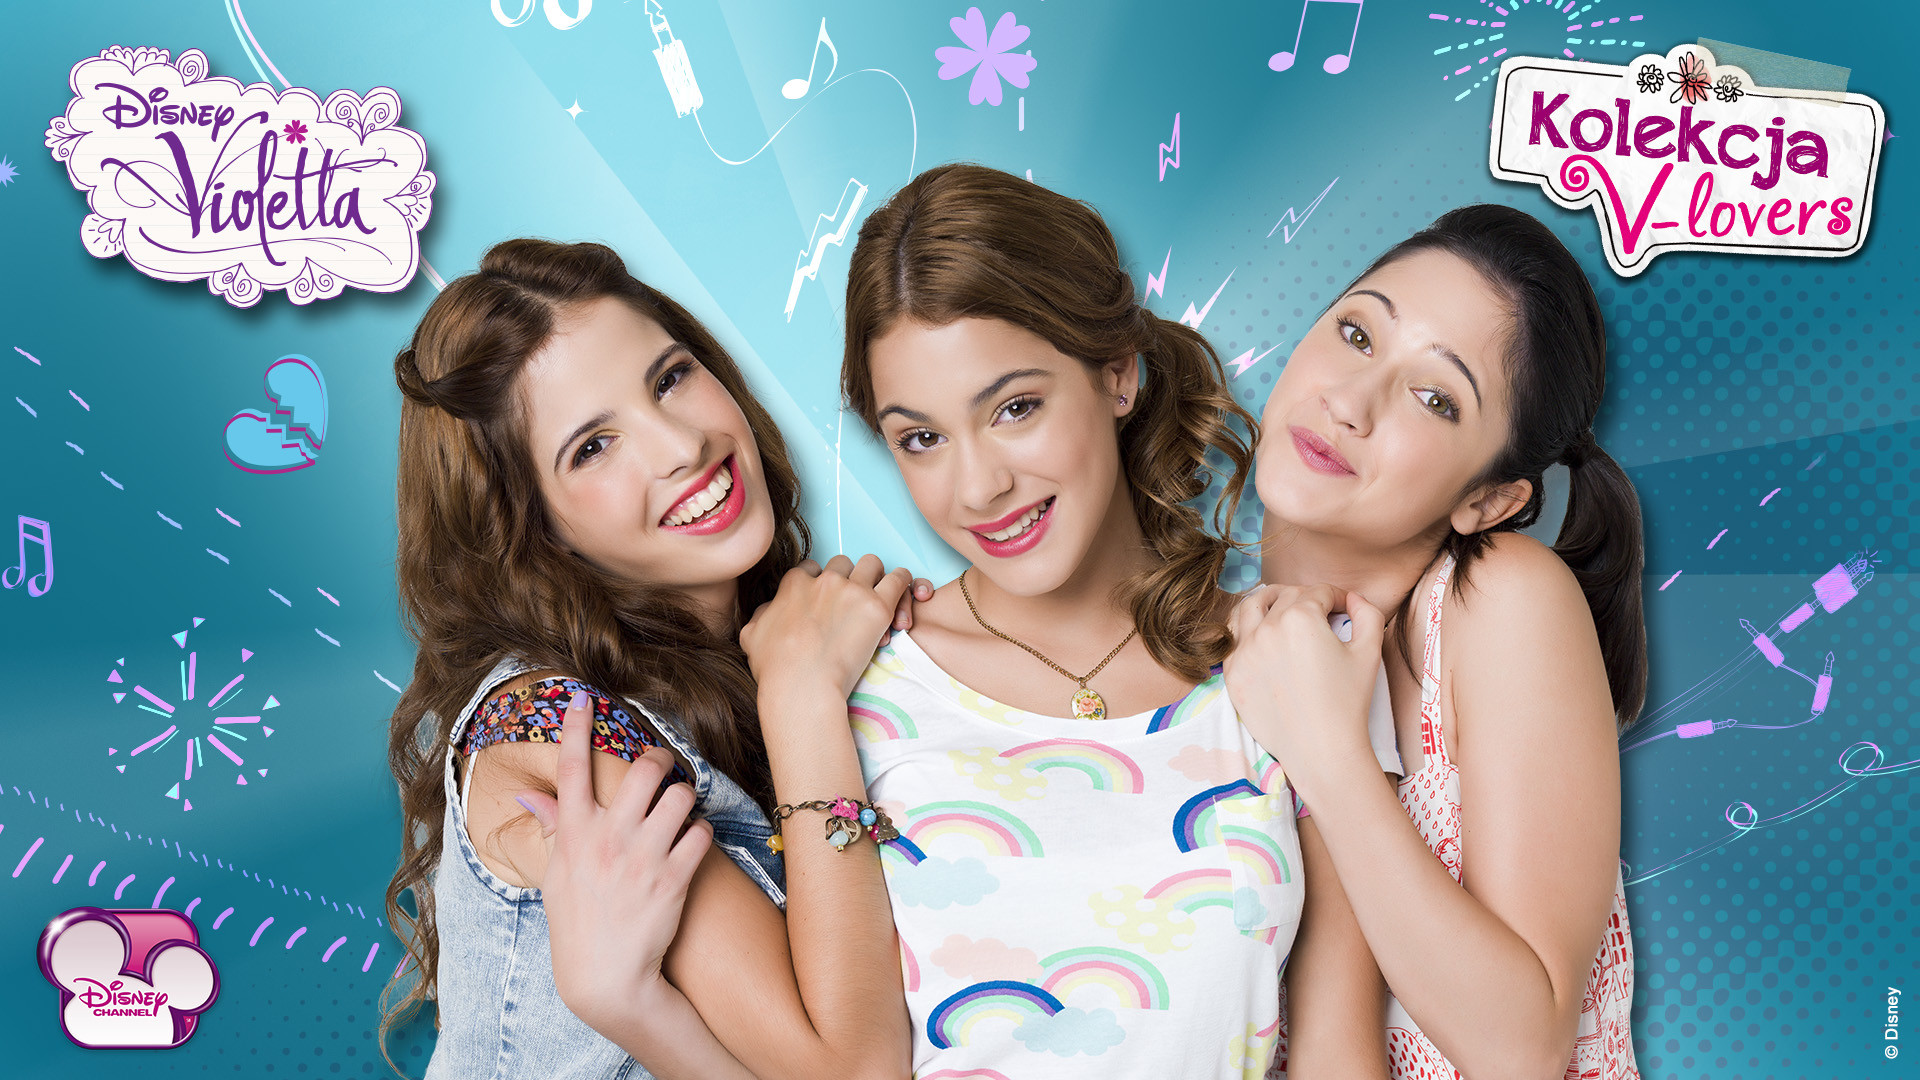 Violetta wallpapers - Image violetta ...